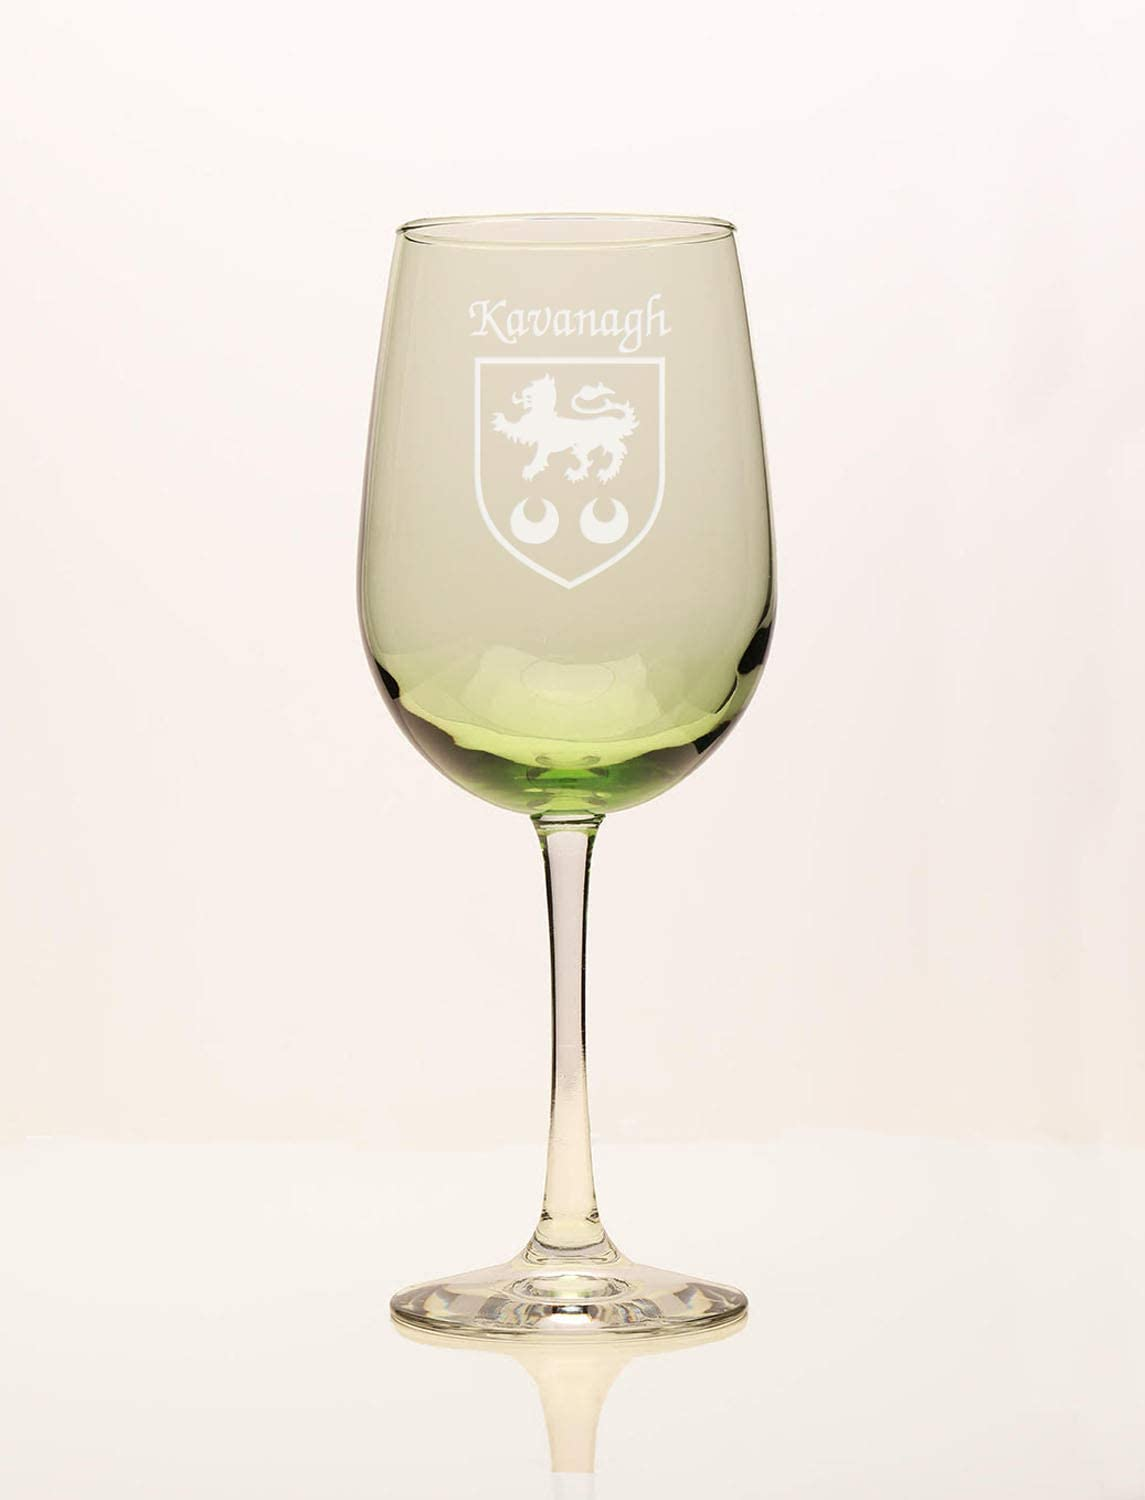 Kavanagh Irish Max 60% OFF Coat of Wine Glass Arms Green Dealing full price reduction